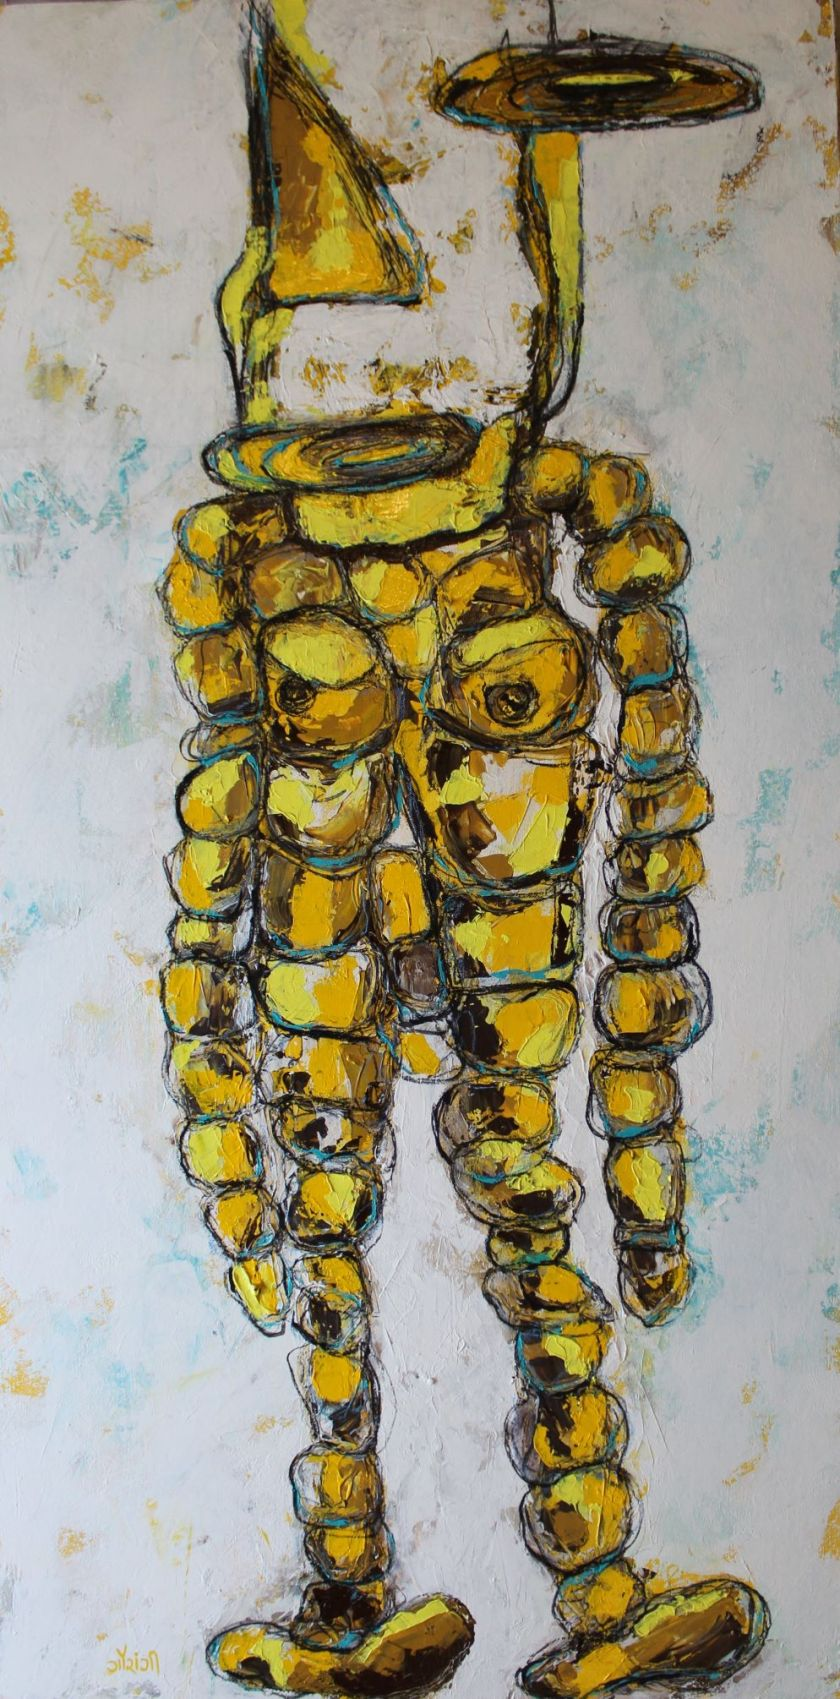 Title: The fragmented Self Medium: Acrylic and charcoal on canvas Size: 41.5*42 inches / 105.41*106.68 cm (2018) Artist: gaurangi mehta shah